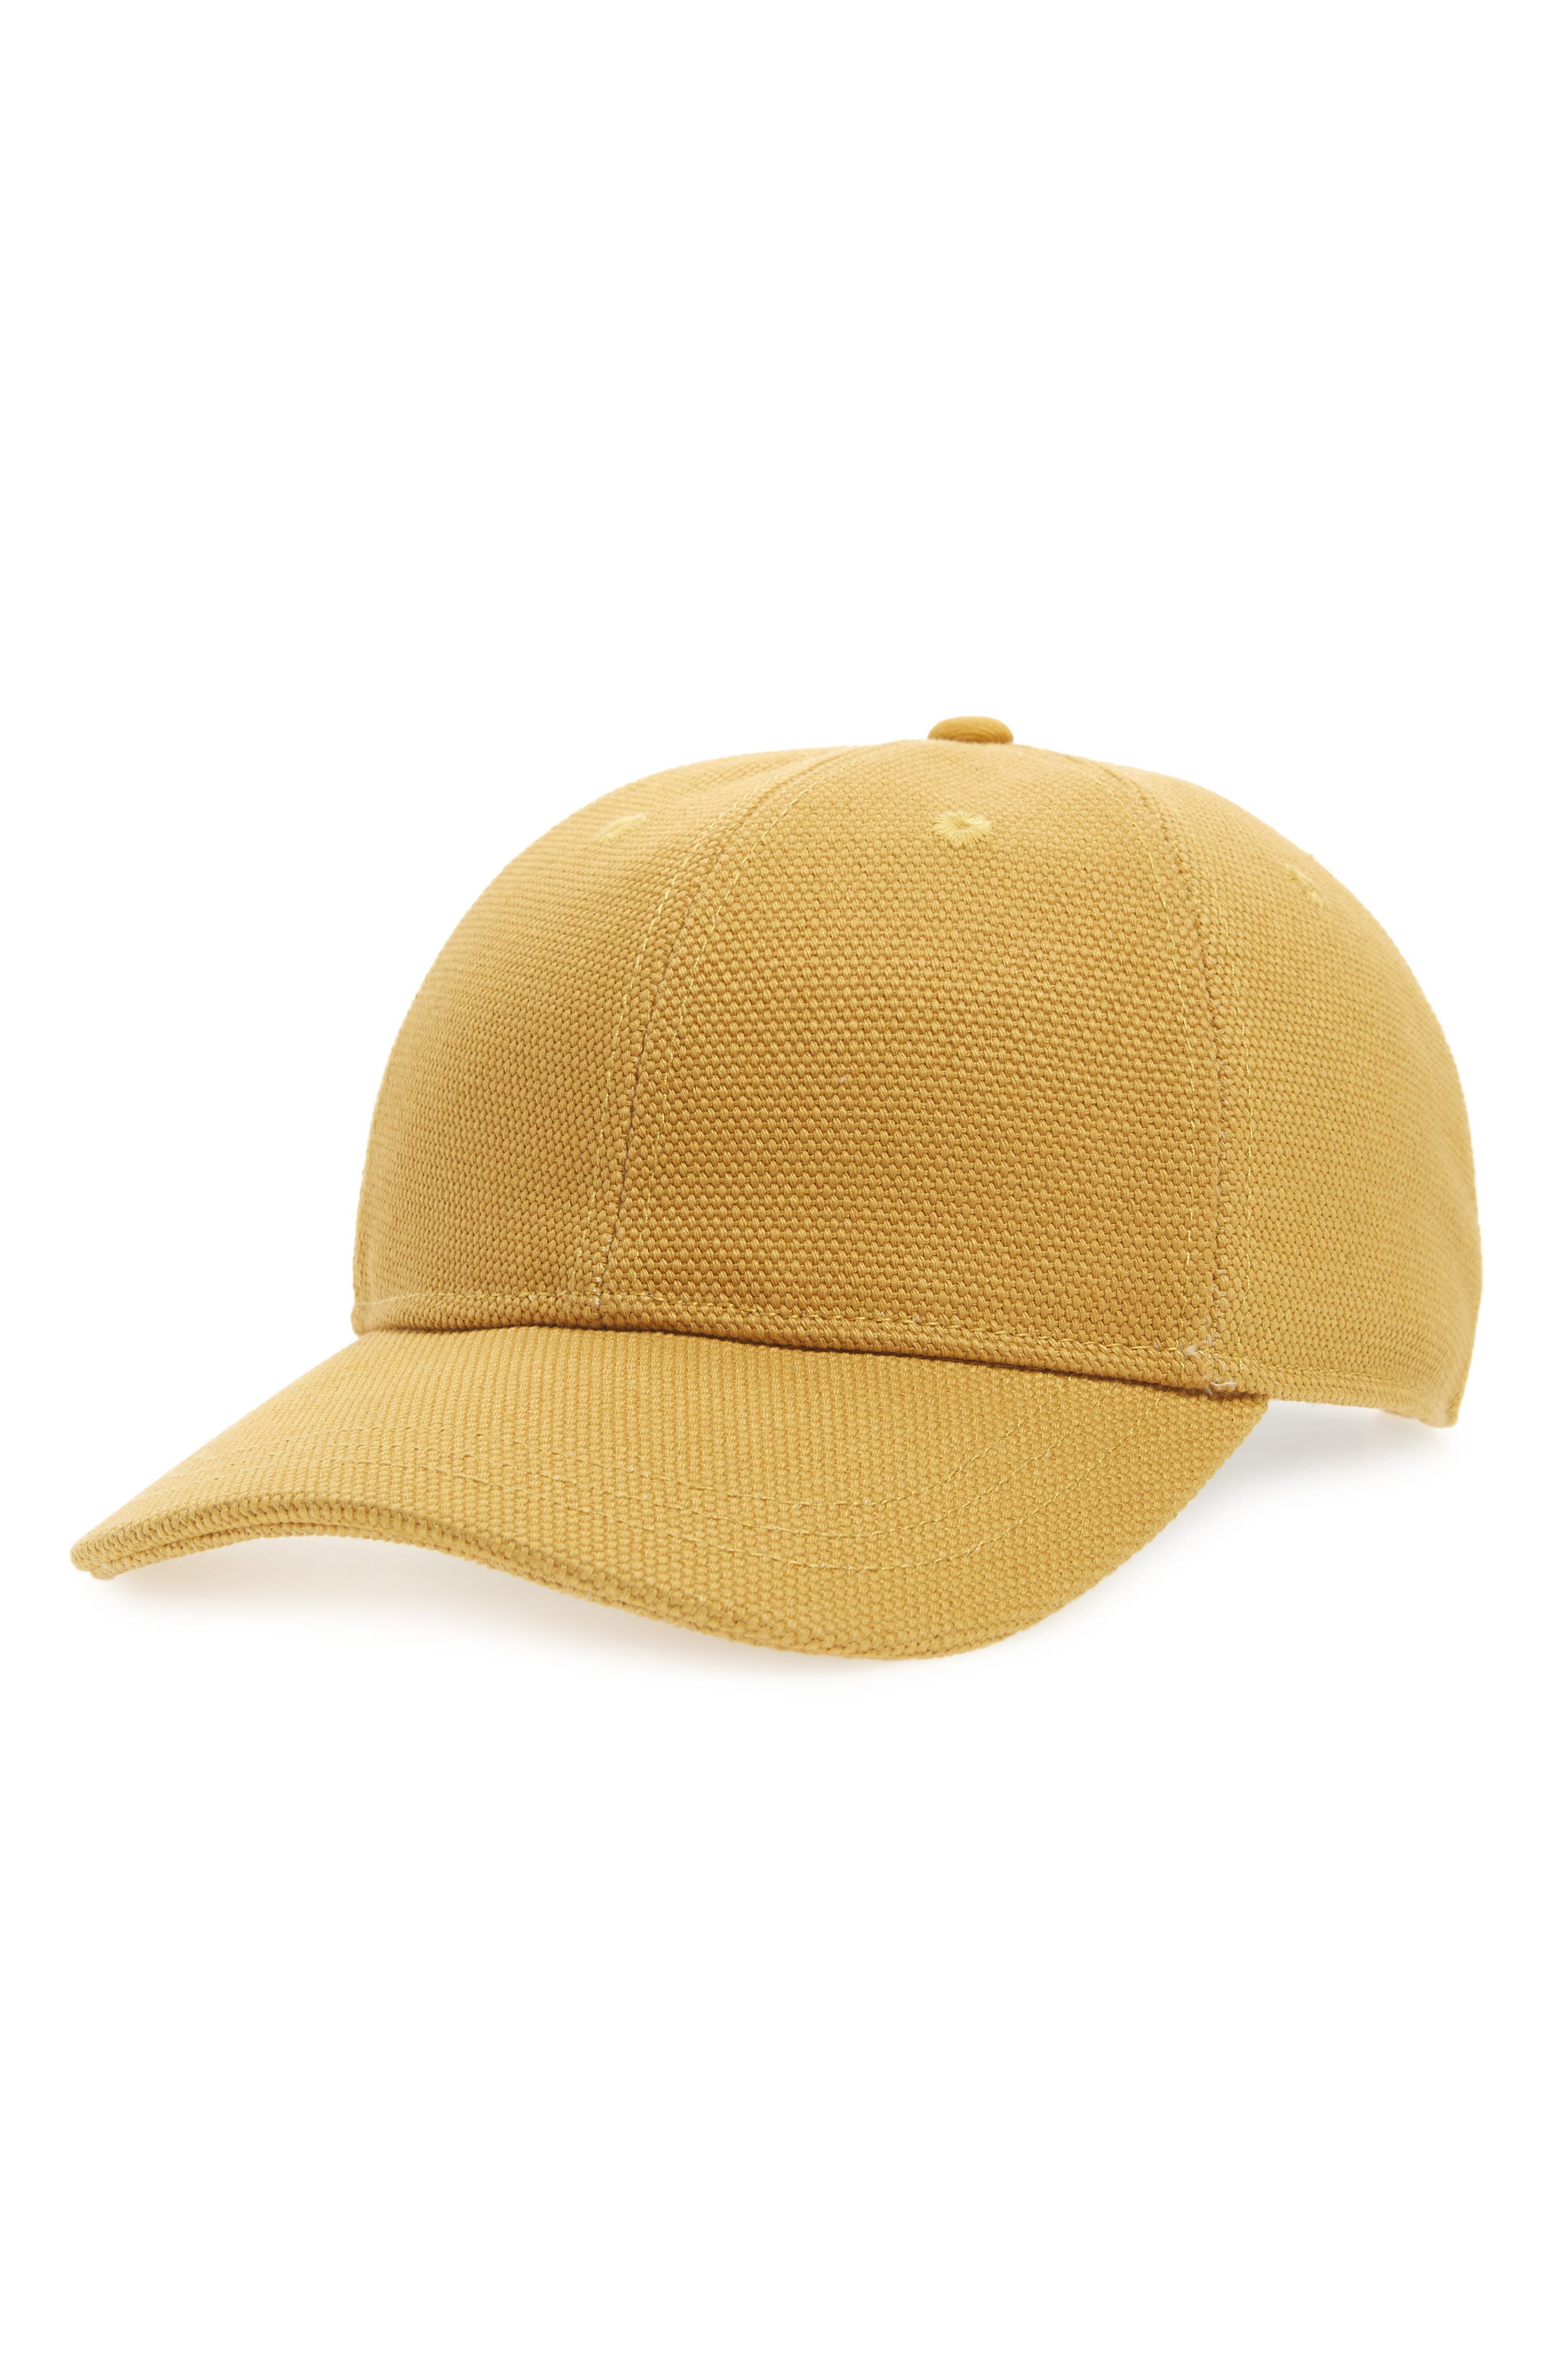 Canvas Baseball Cap,                         Main,                         color, 250